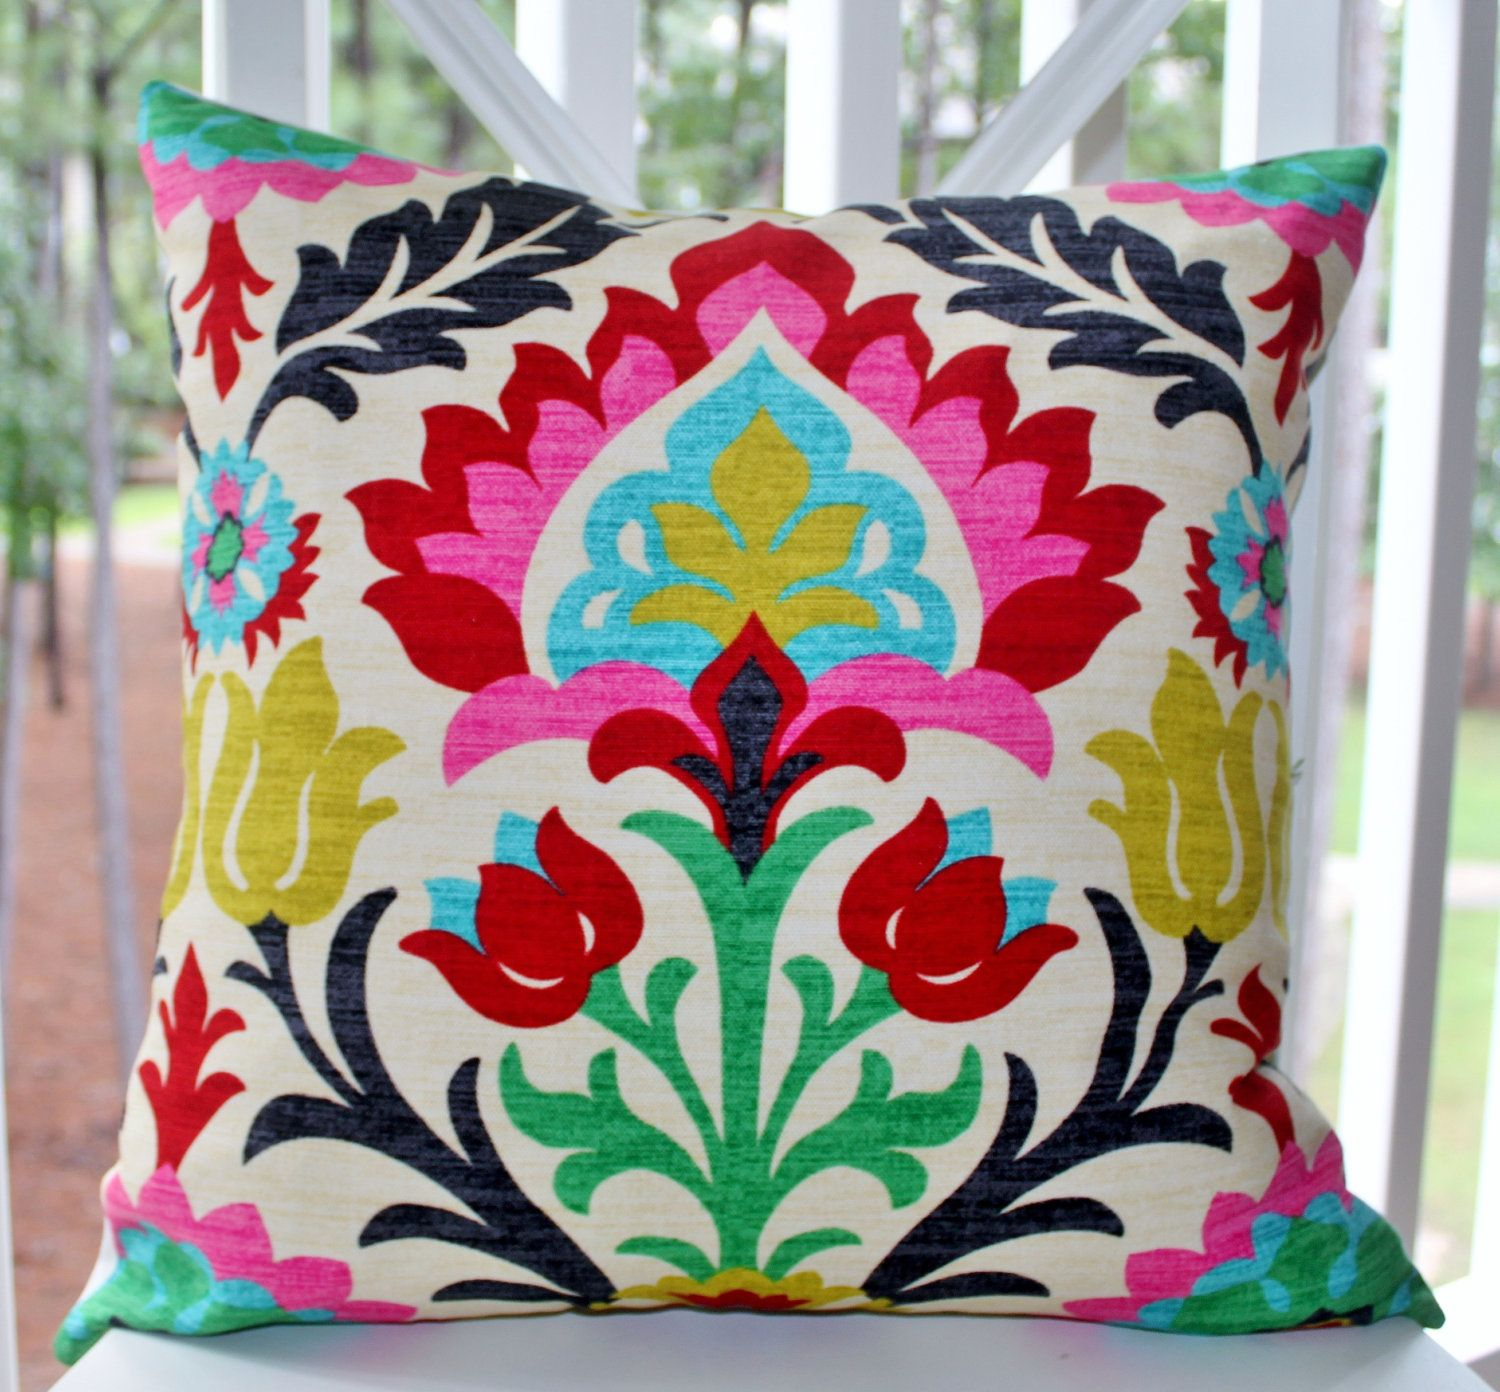 New Fashion Flower Wreath Initial Letter Pillow Case 45*45 Print Pillow Cases Zentangle A Monogram Alphabet Illustration Pillows Making Things Convenient For The People Cushion Cover Home & Garden